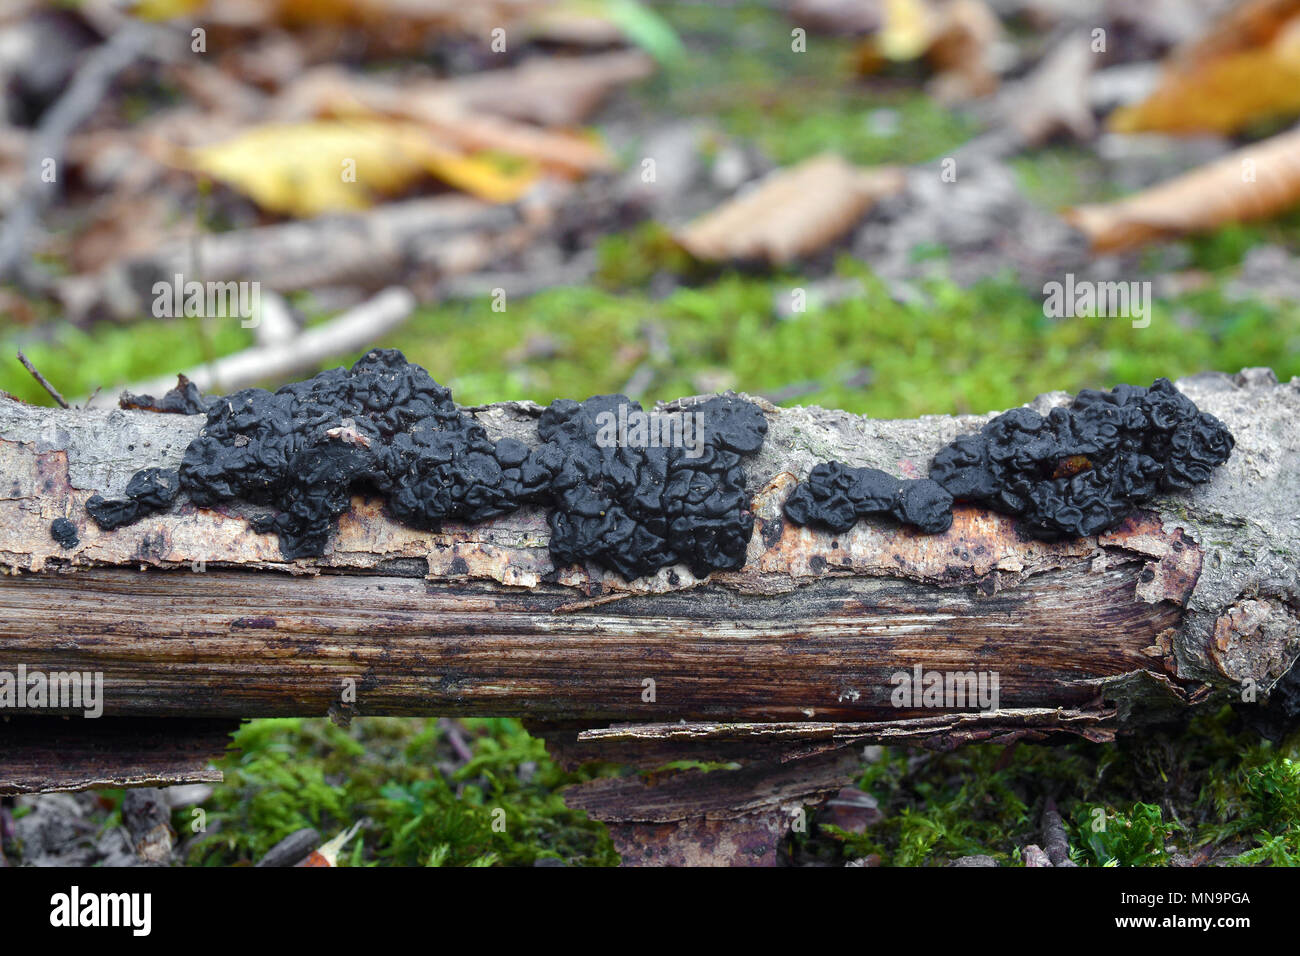 exidia nigricans jelly fungus, known as the witche's butter - Stock Image